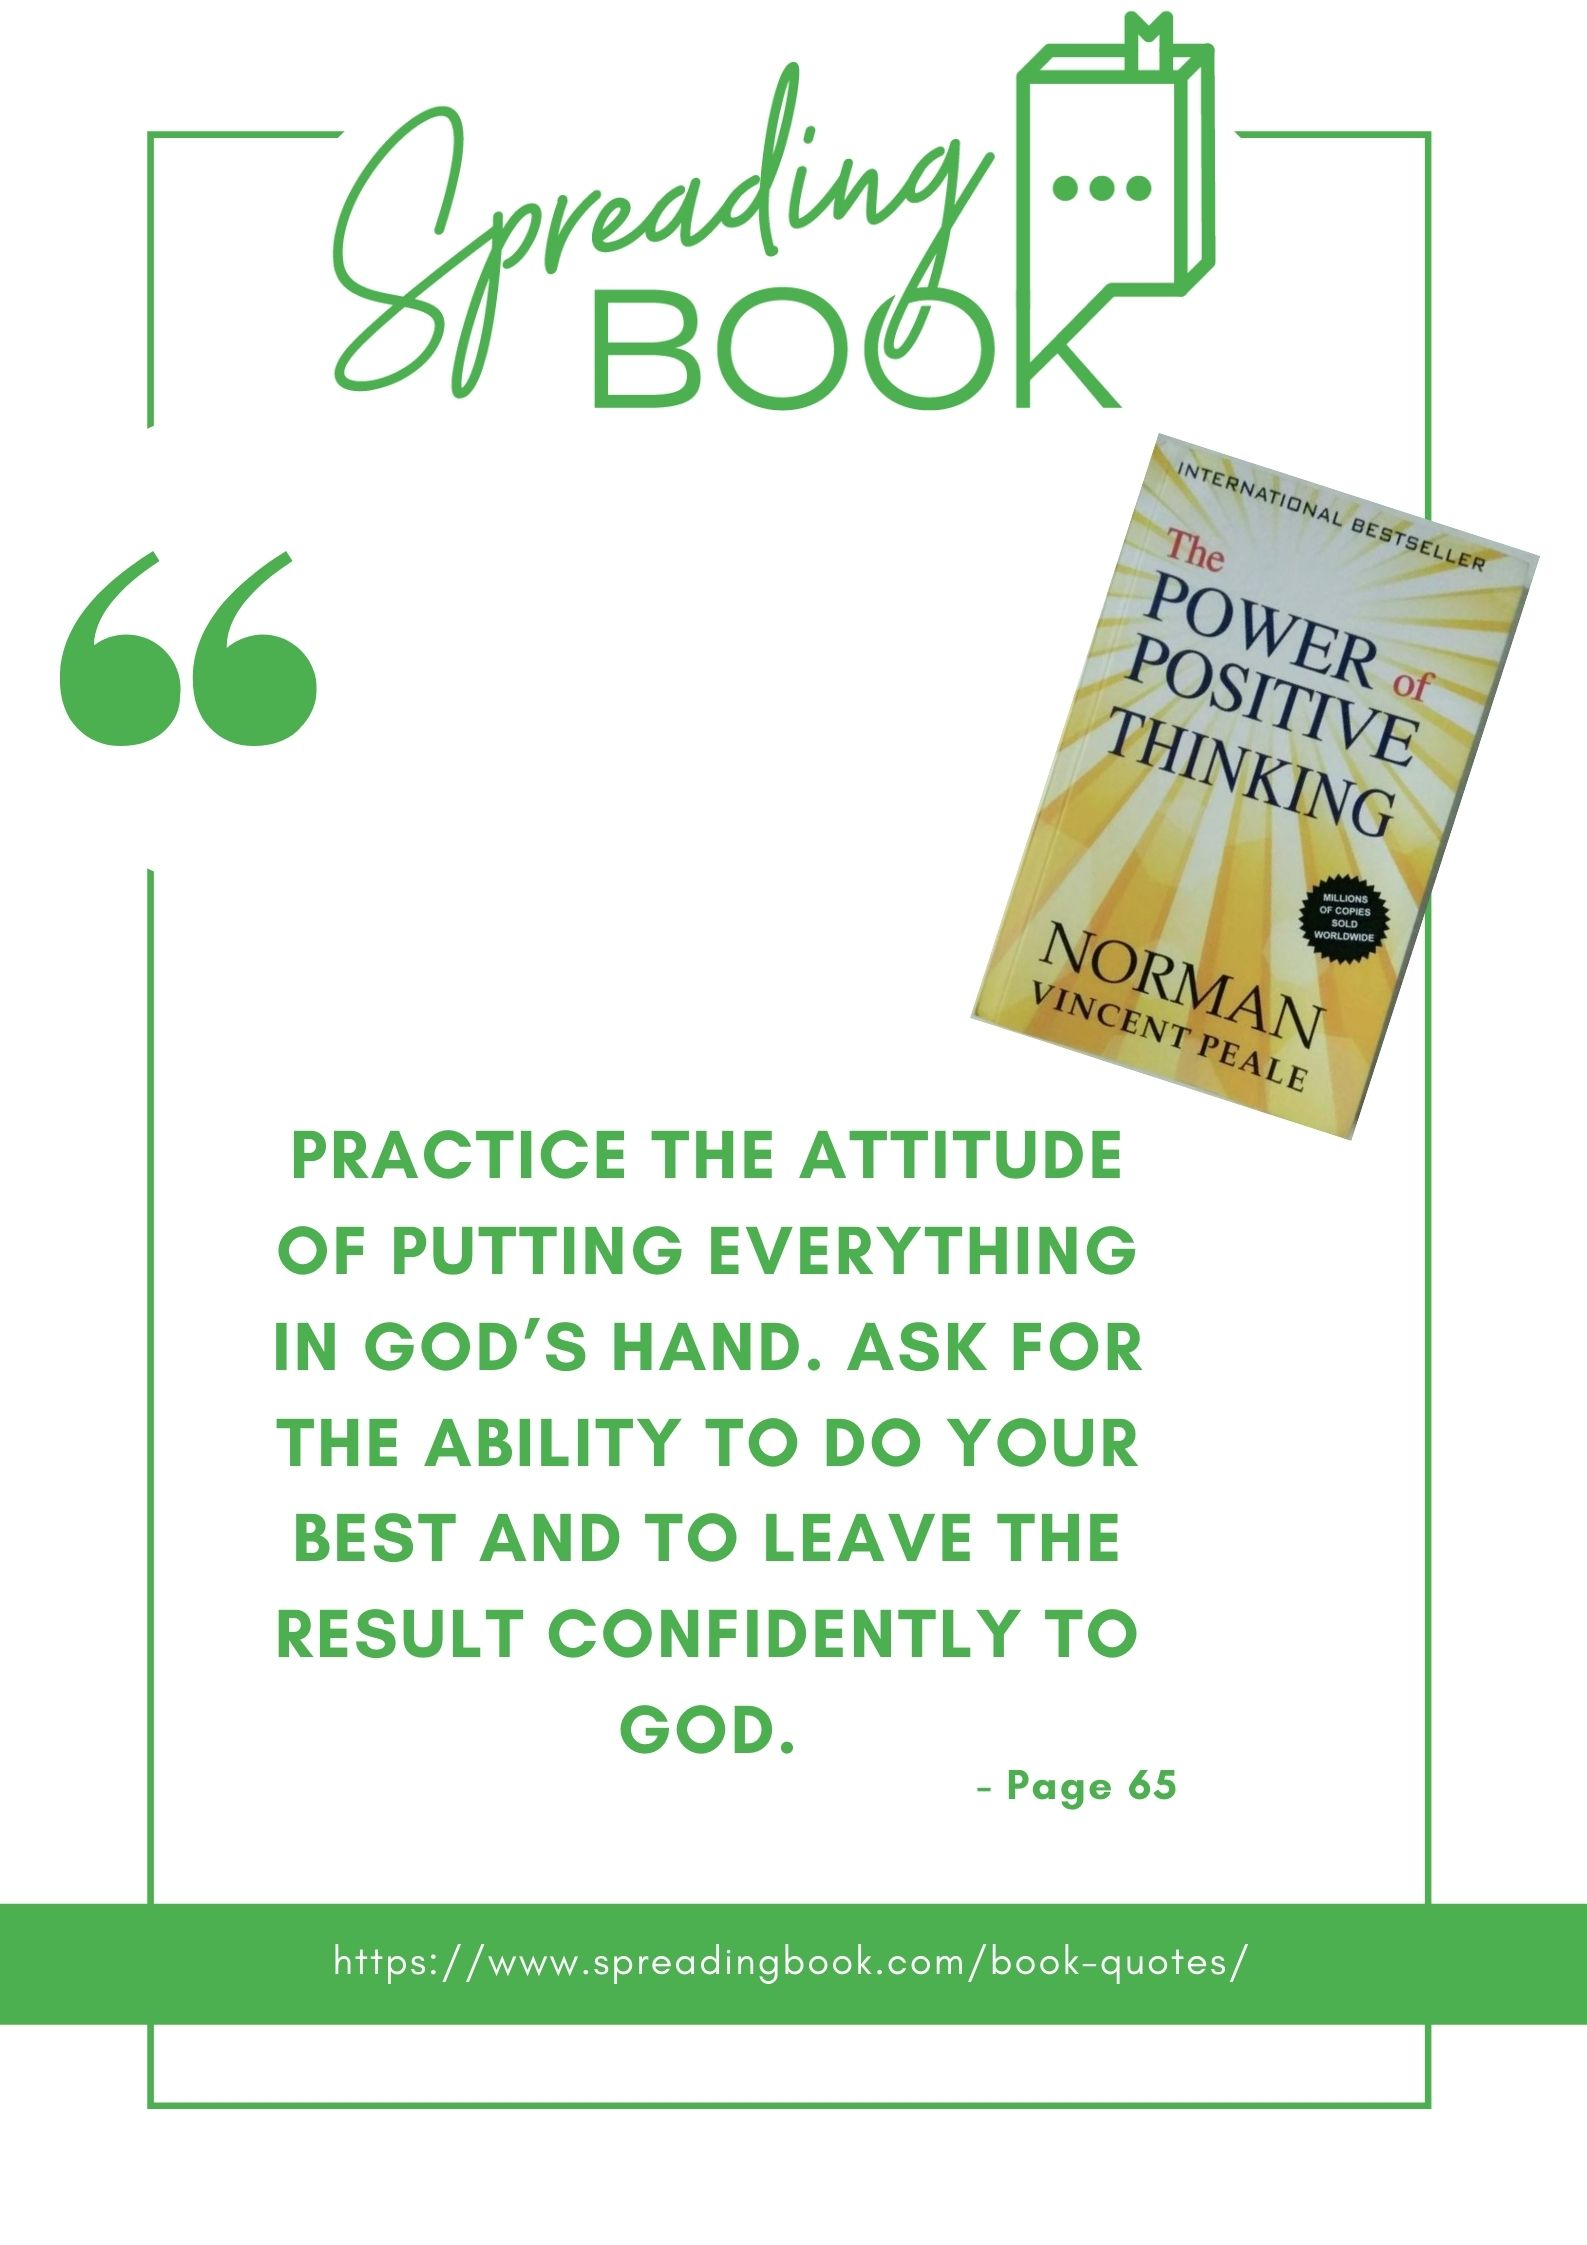 Practice the attitude of putting everything in God's hand. Ask for the ability to do your best and to leave the result confidently to God.